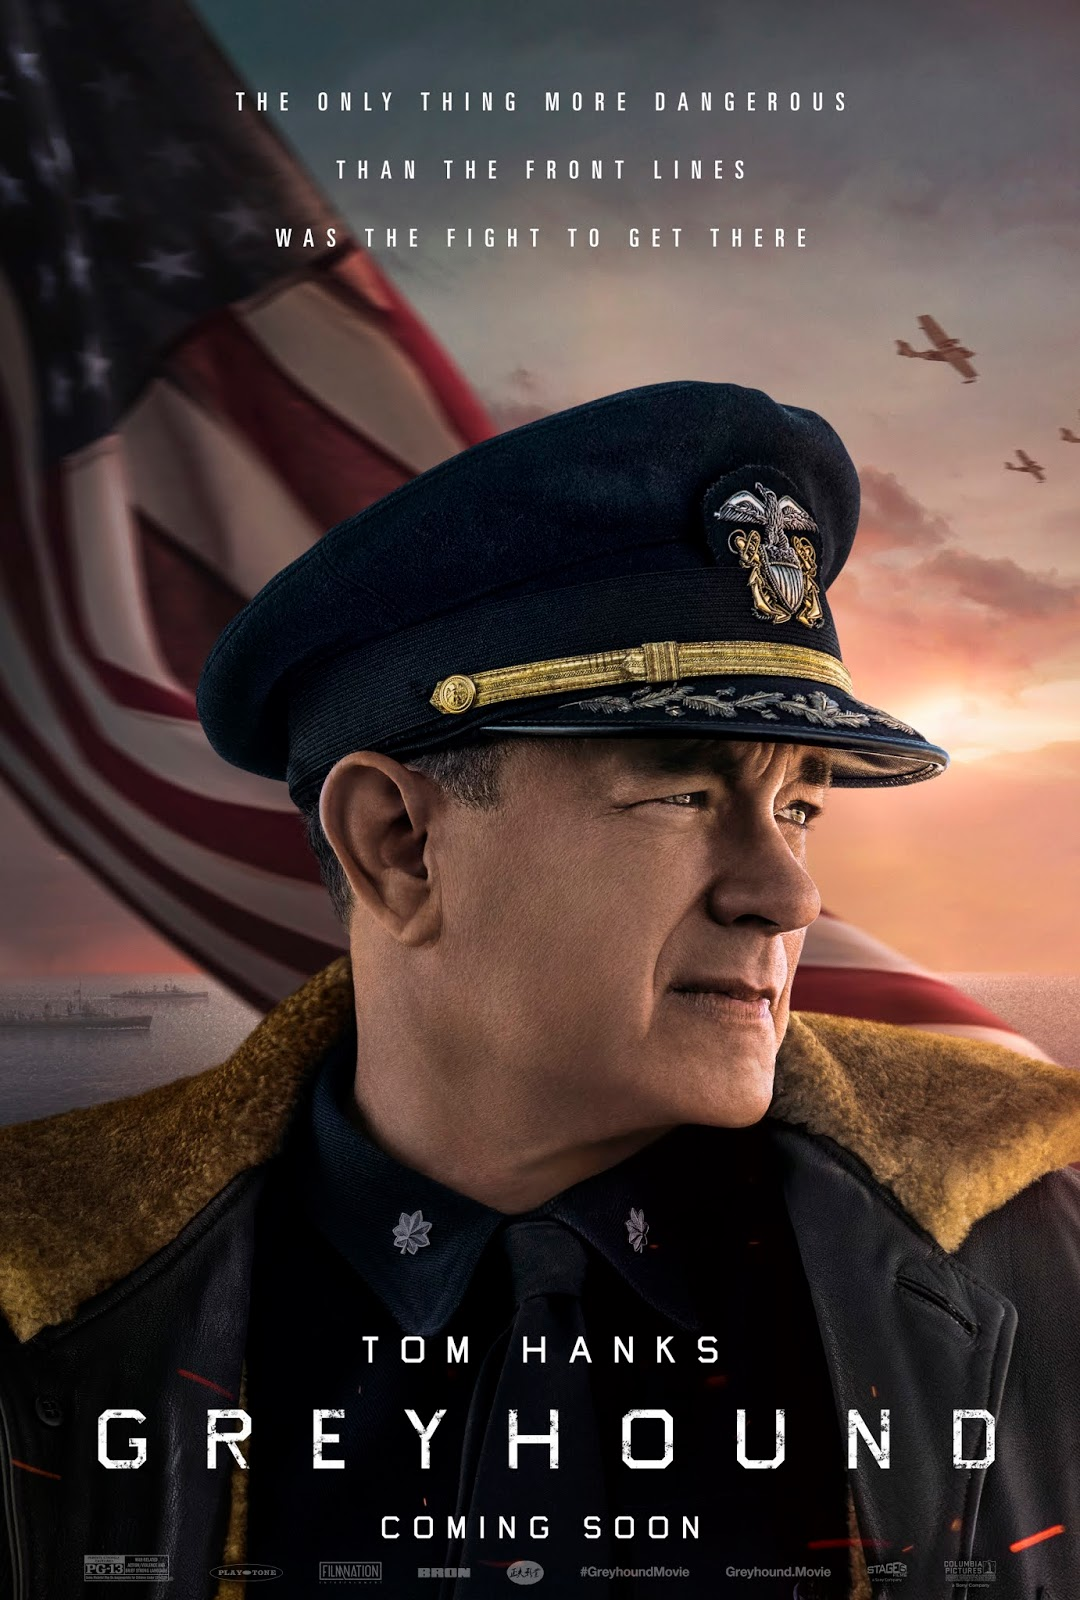 misja greyhound tom hanks film uboot apple tv recenzja